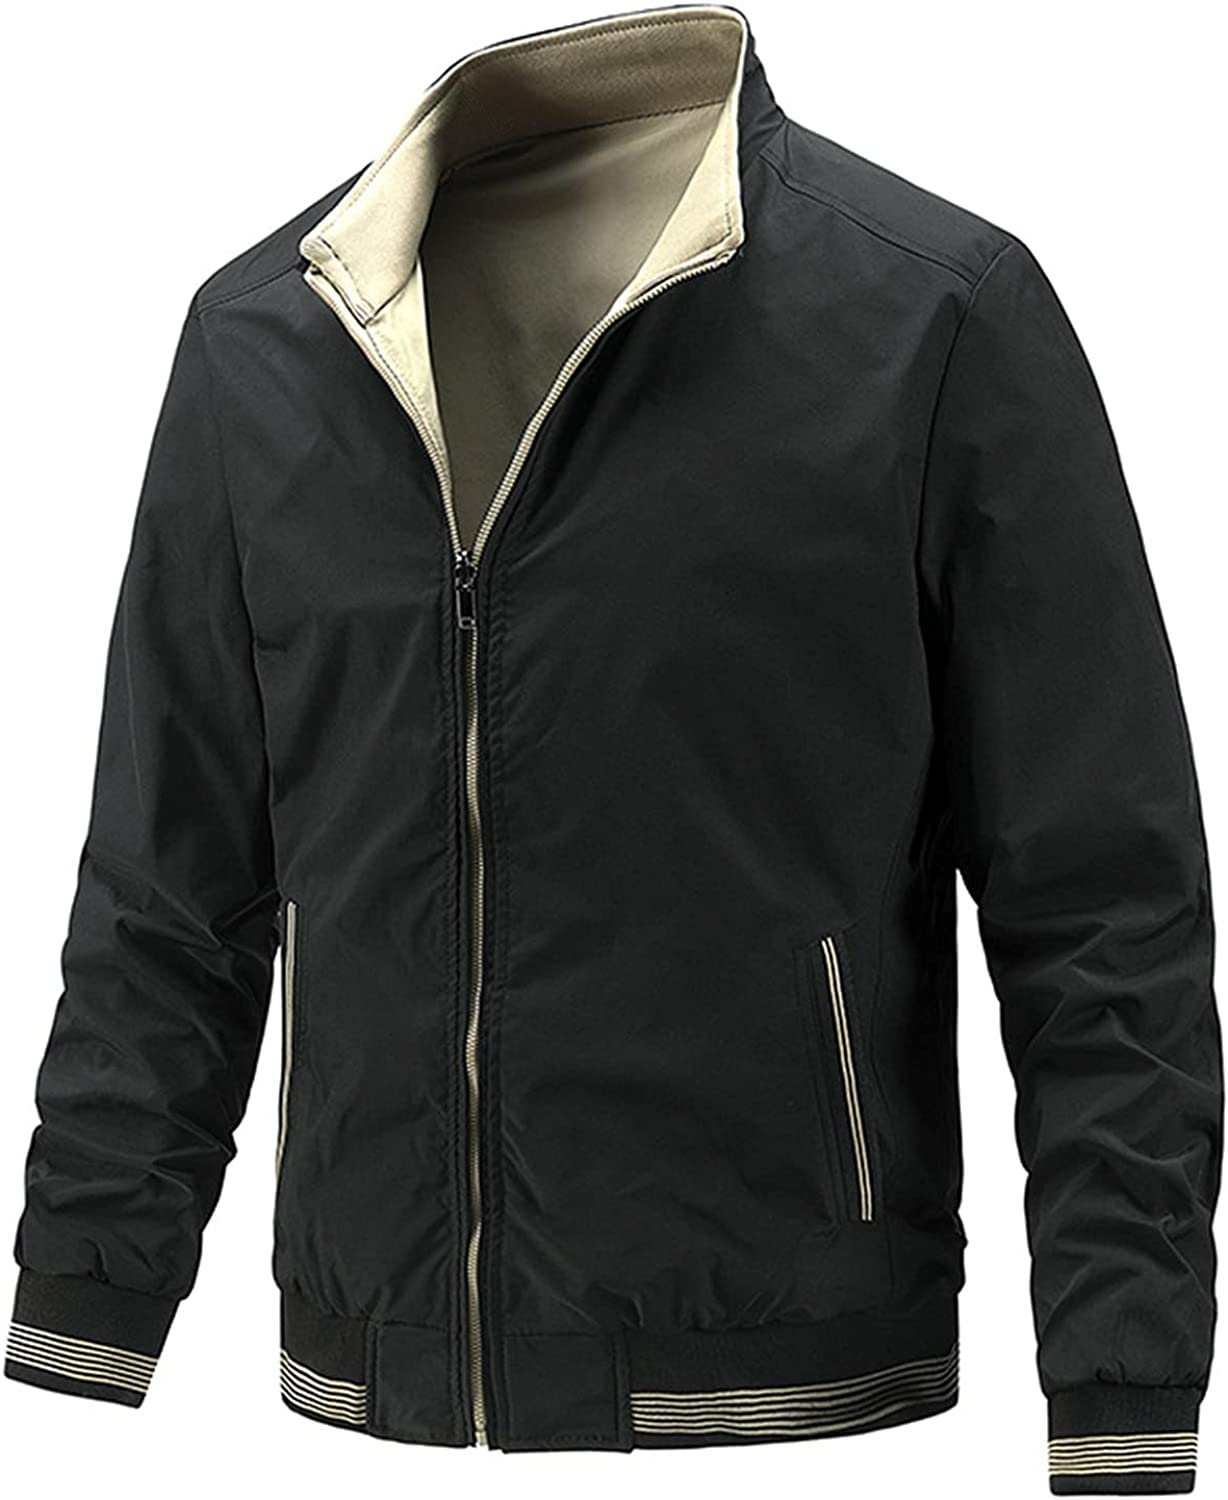 Men's Casual Jacket,Double-Sided Wear Fashionable Outerwear,Simple Business Stand Collar Coat